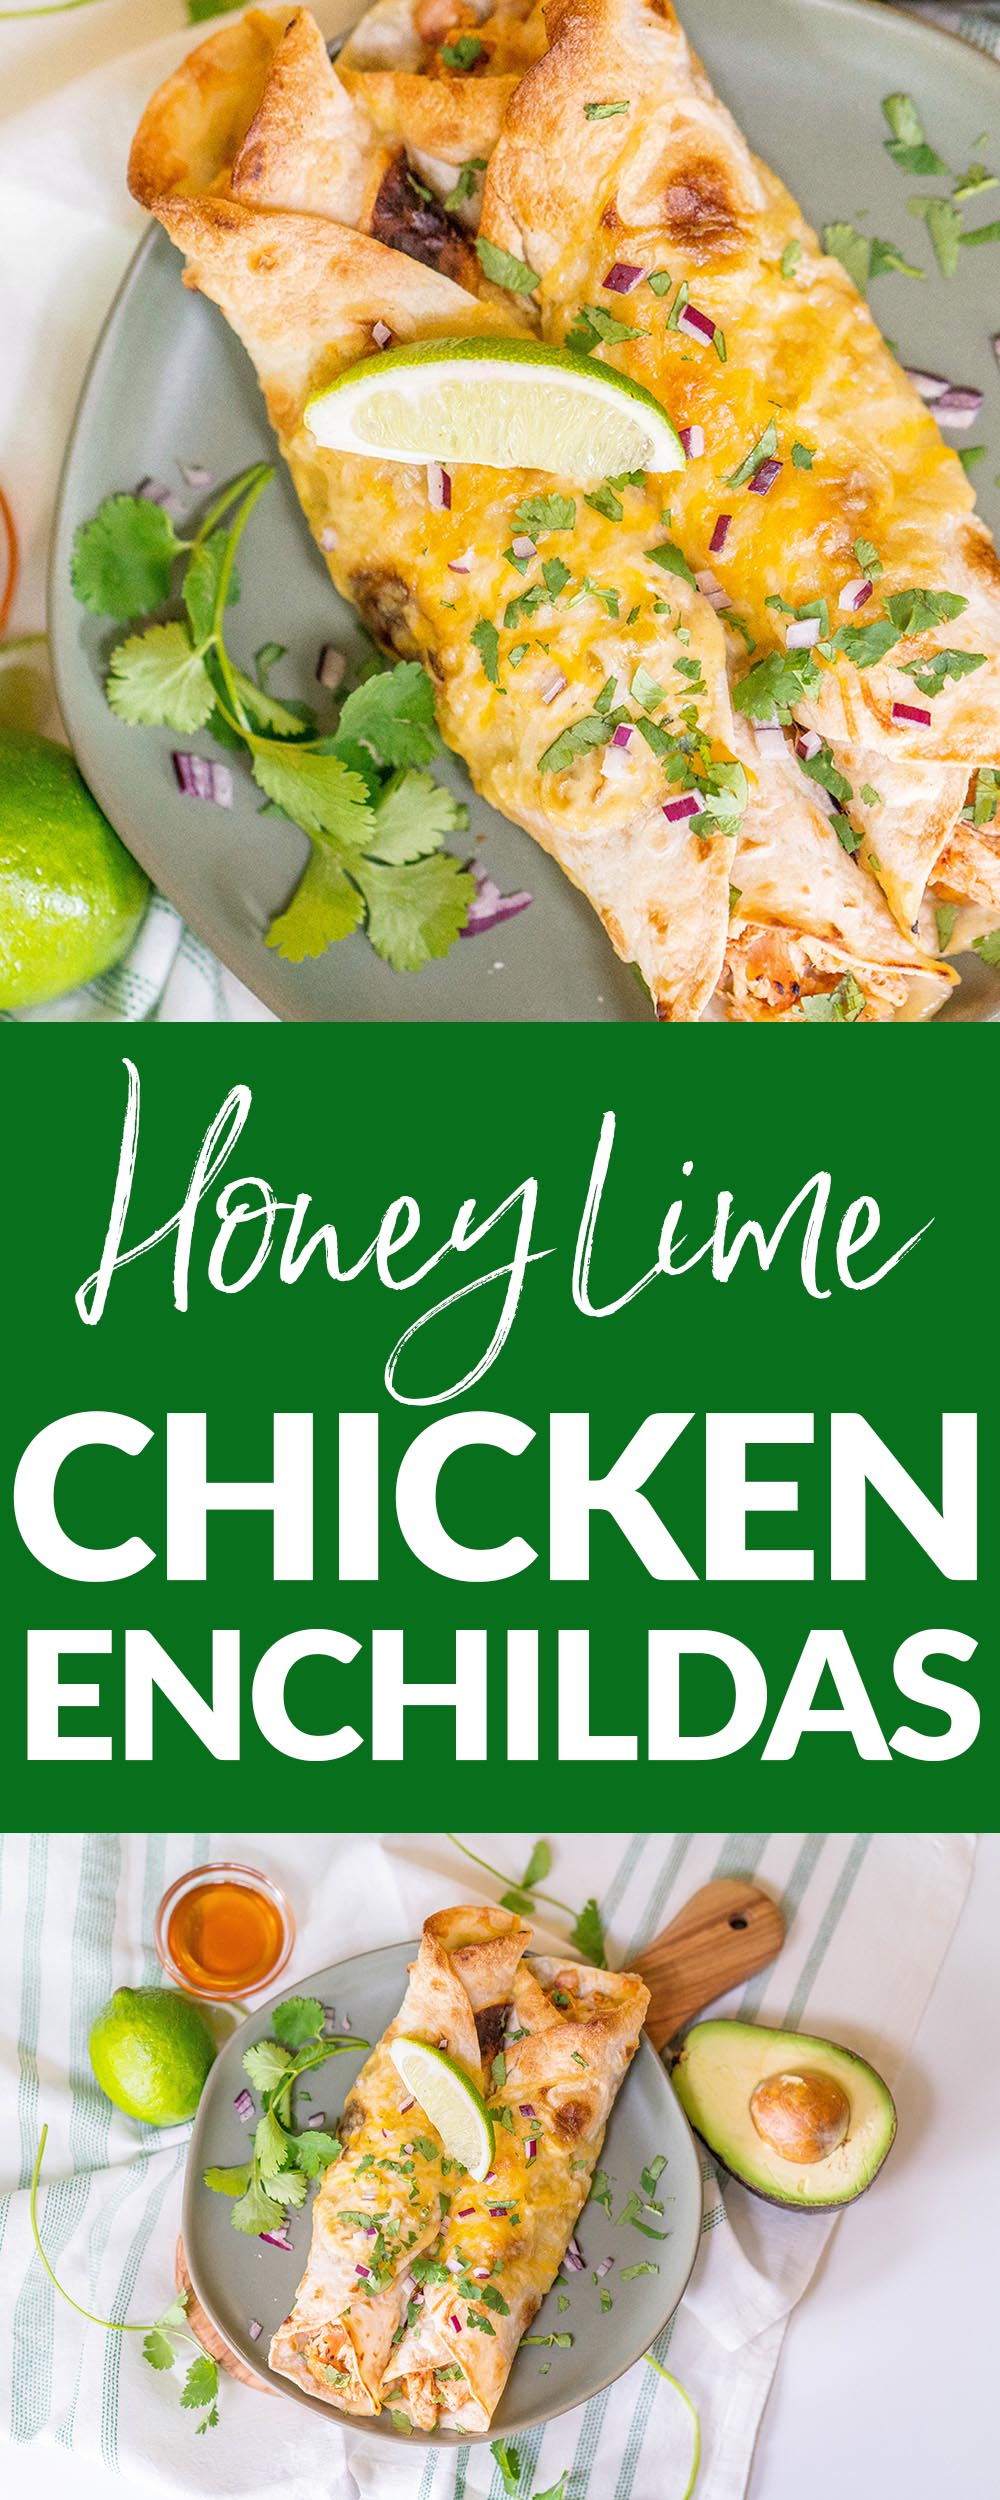 These Honey Lime Chicken Enchiladas are sure to be your family's new favorite comfort food. They are easy to make ahead and a big crowd pleaser!